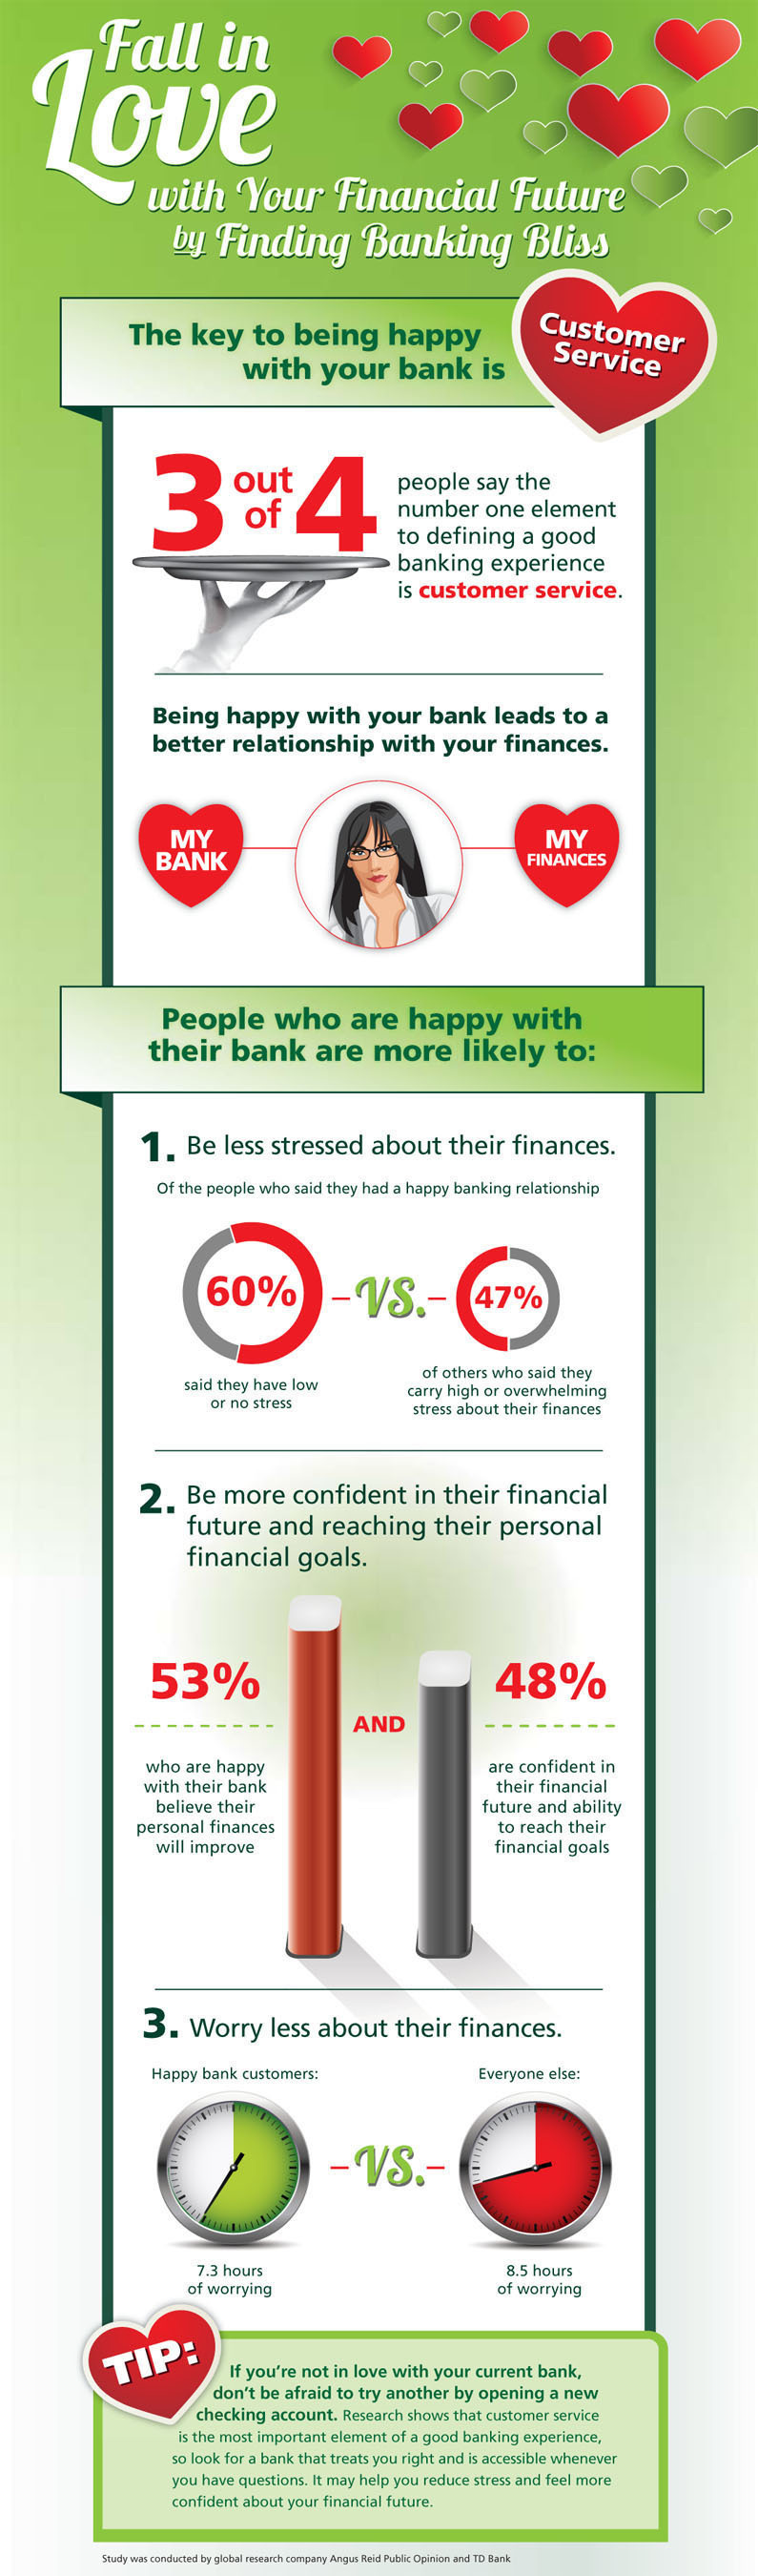 """Consumers """"feeling the love"""" from their bank found to have less financial stress and more confidence in  ..."""